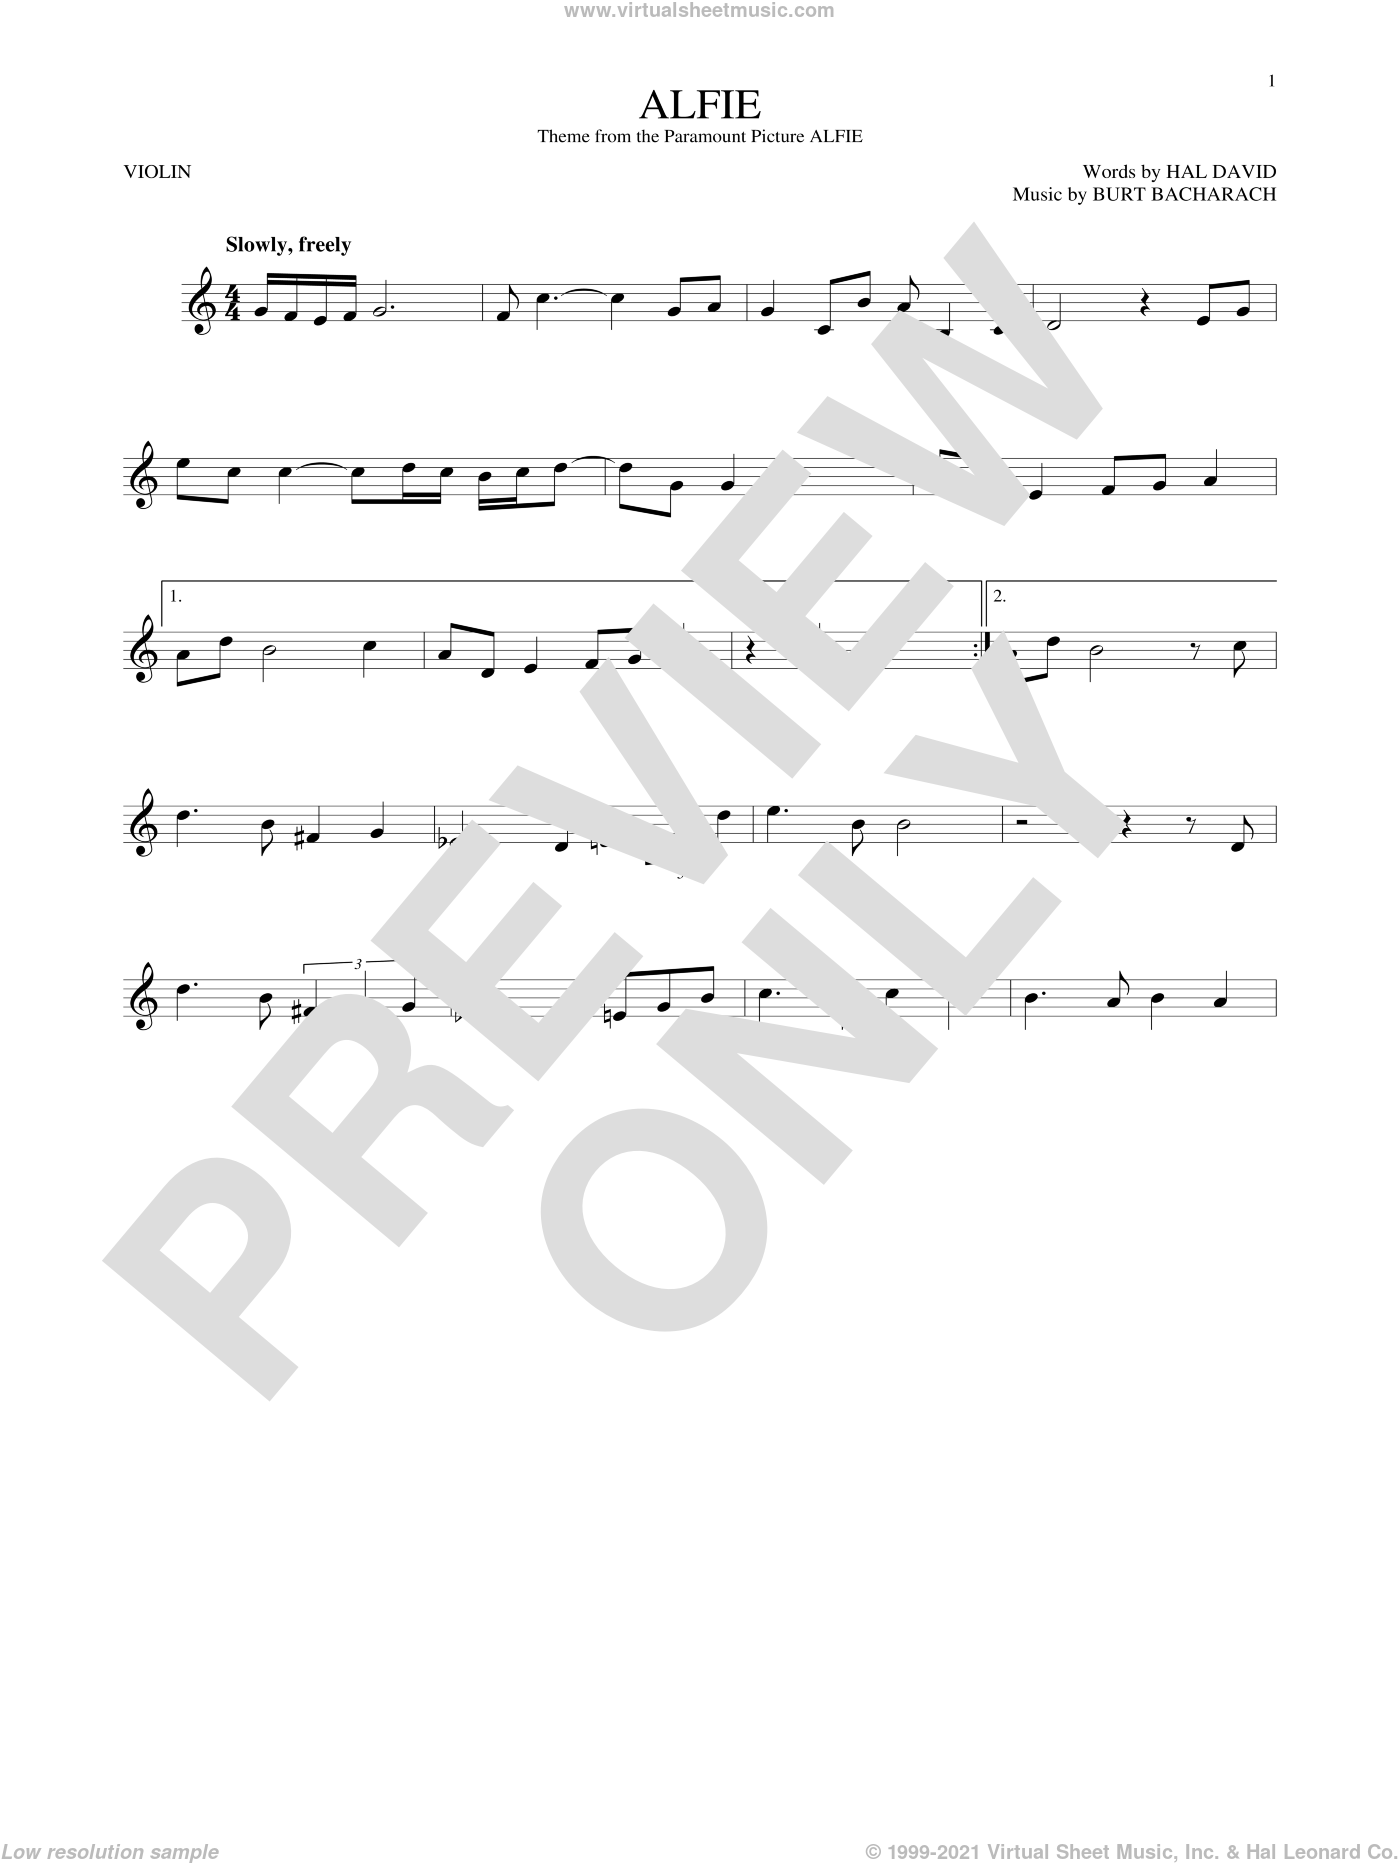 Alfie sheet music for violin solo by Dionne Warwick, Cher, Miscellaneous, Sonny Rollins, Stevie Wonder, Burt Bacharach and Hal David, intermediate skill level